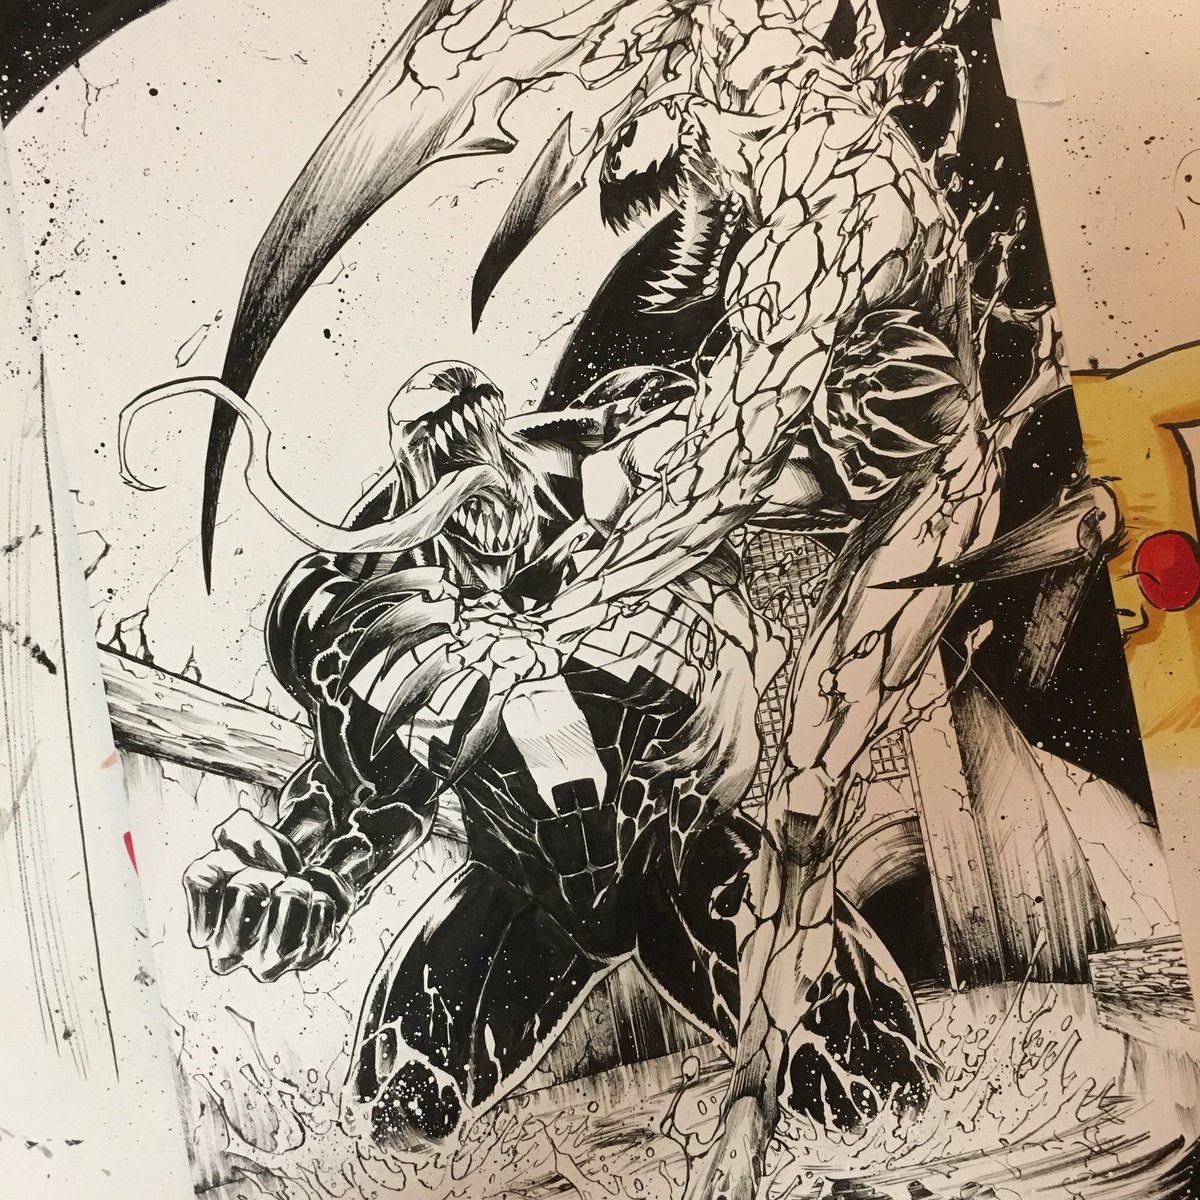 Creeesart On Twitter Finished This Venom Vs Carnage Piece Today On